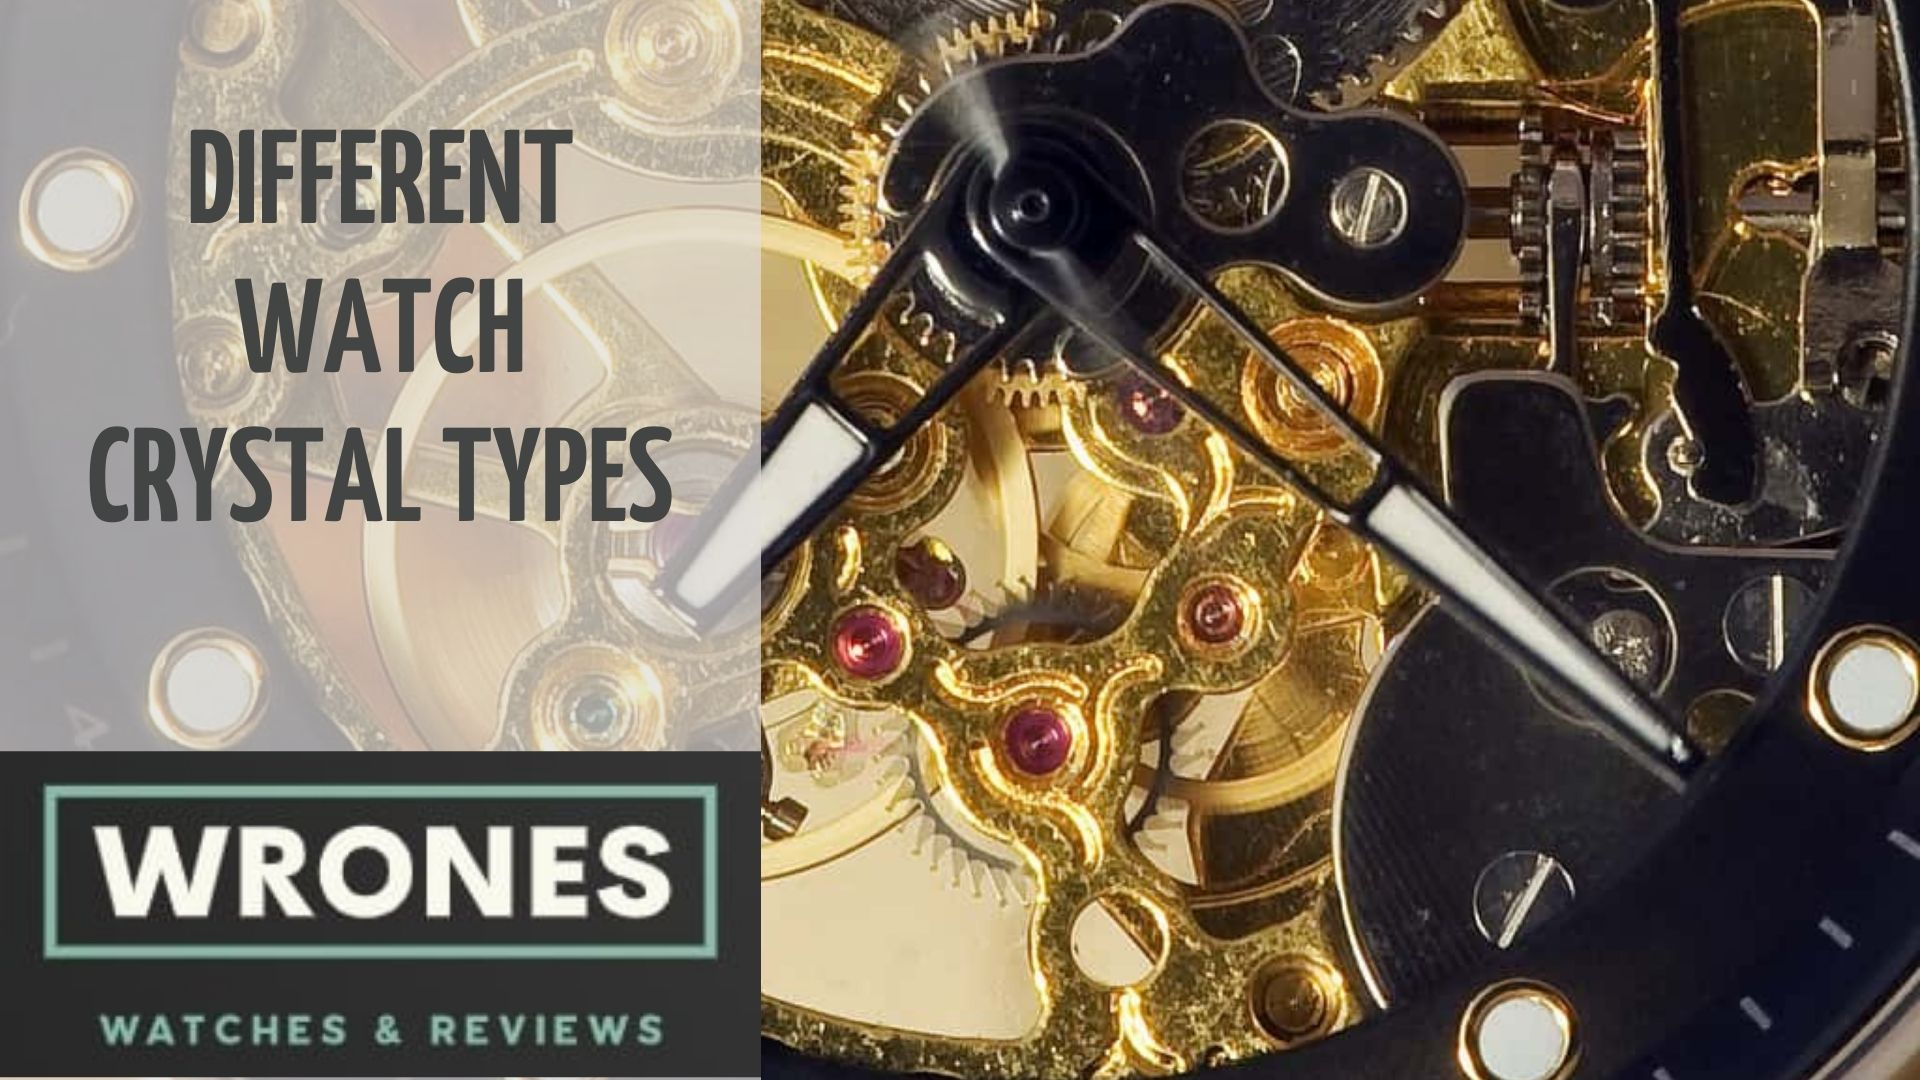 Different Watch Crystal Types wrones